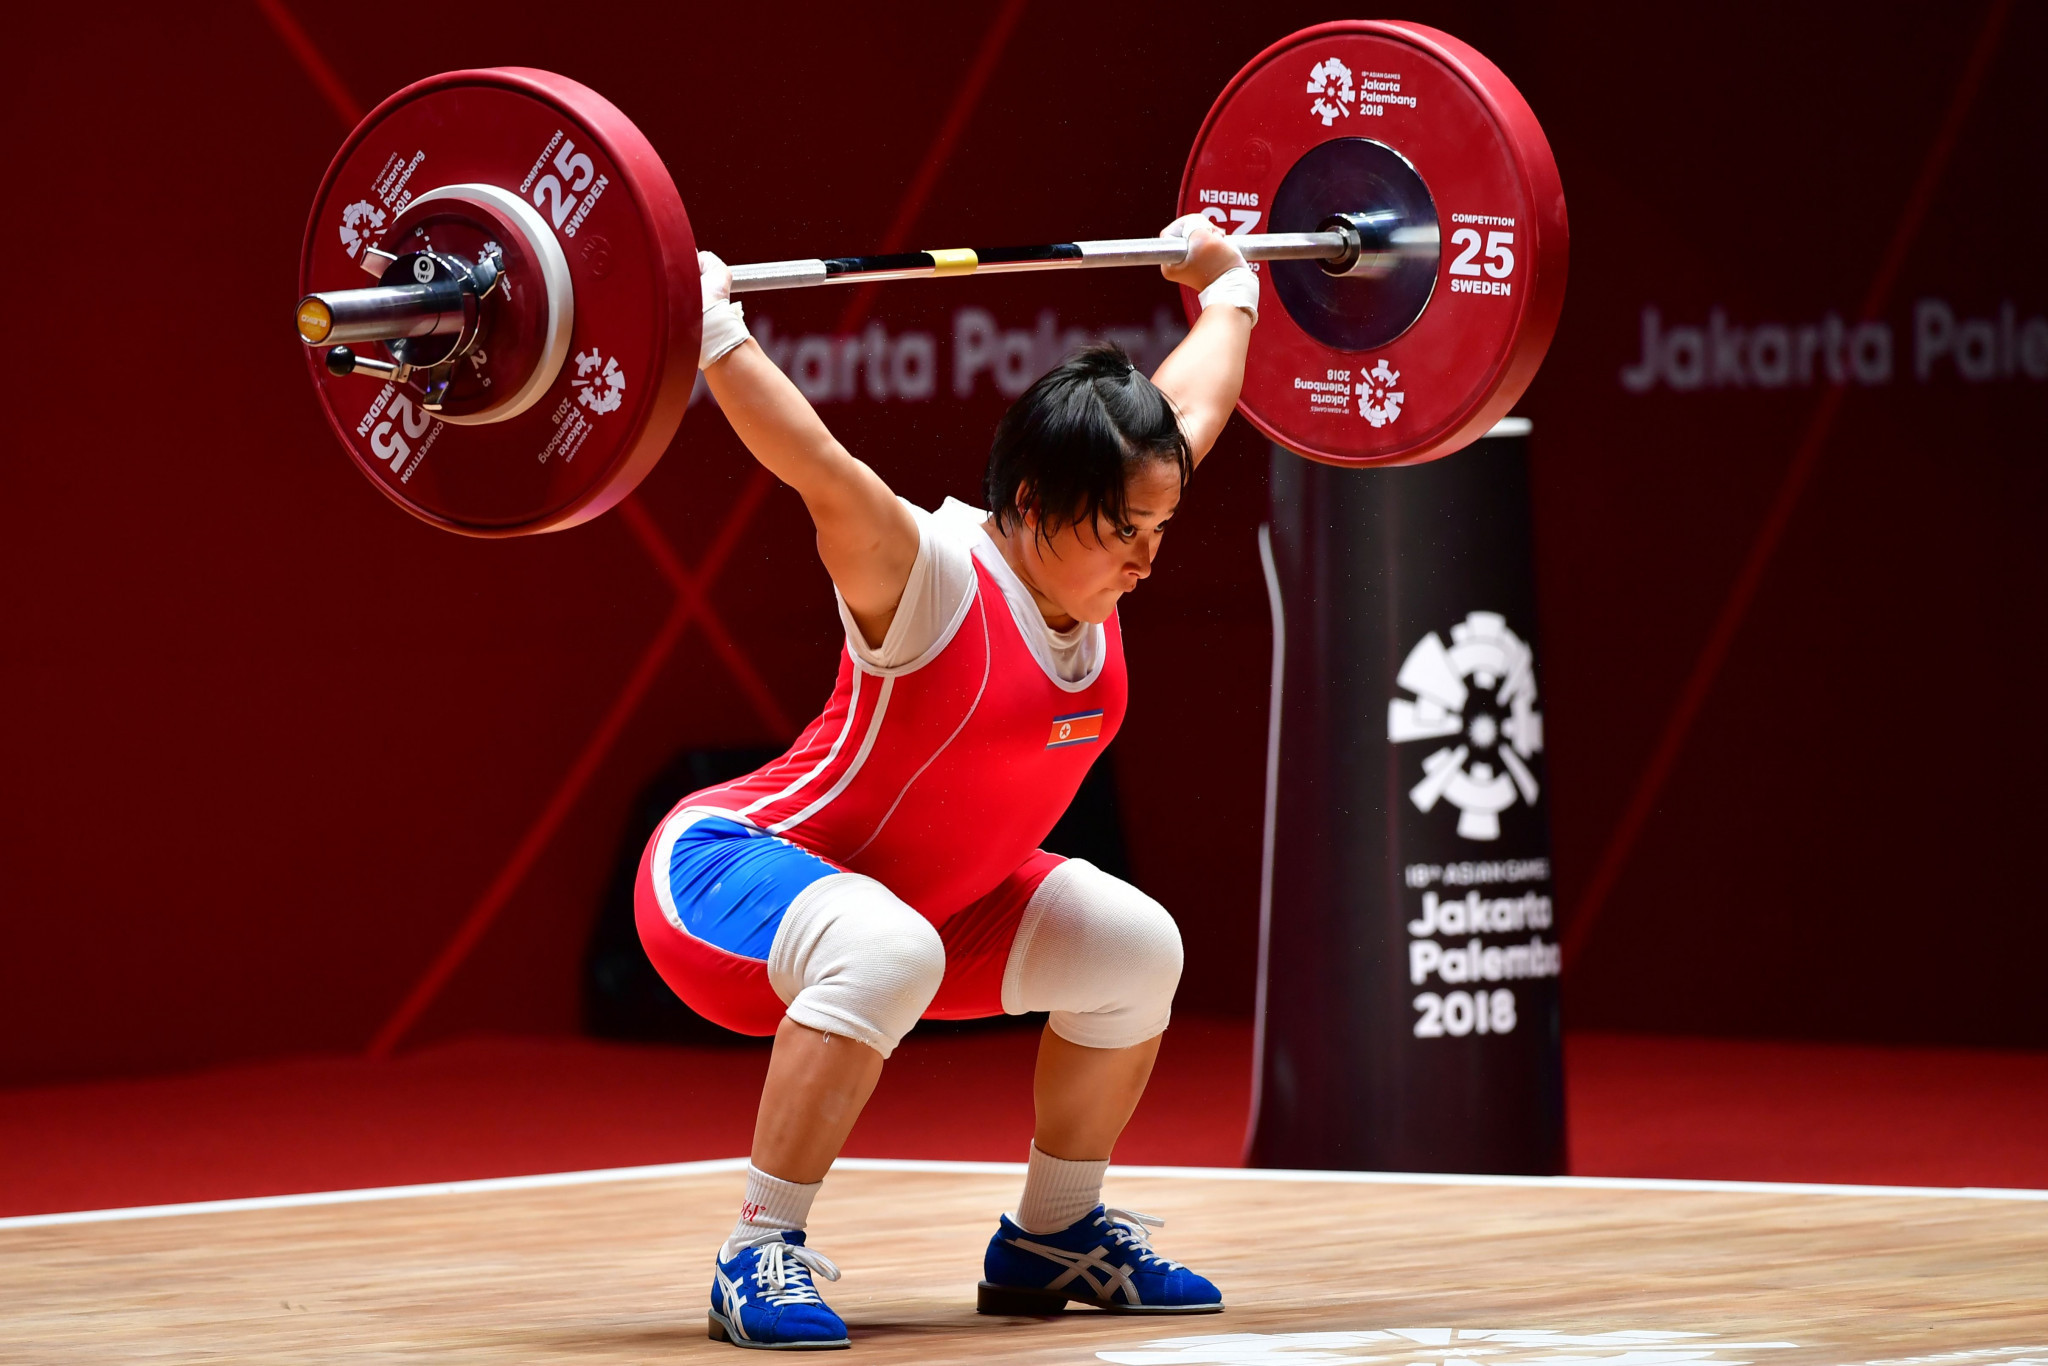 USA Weightlifting announce combine series to find new talent